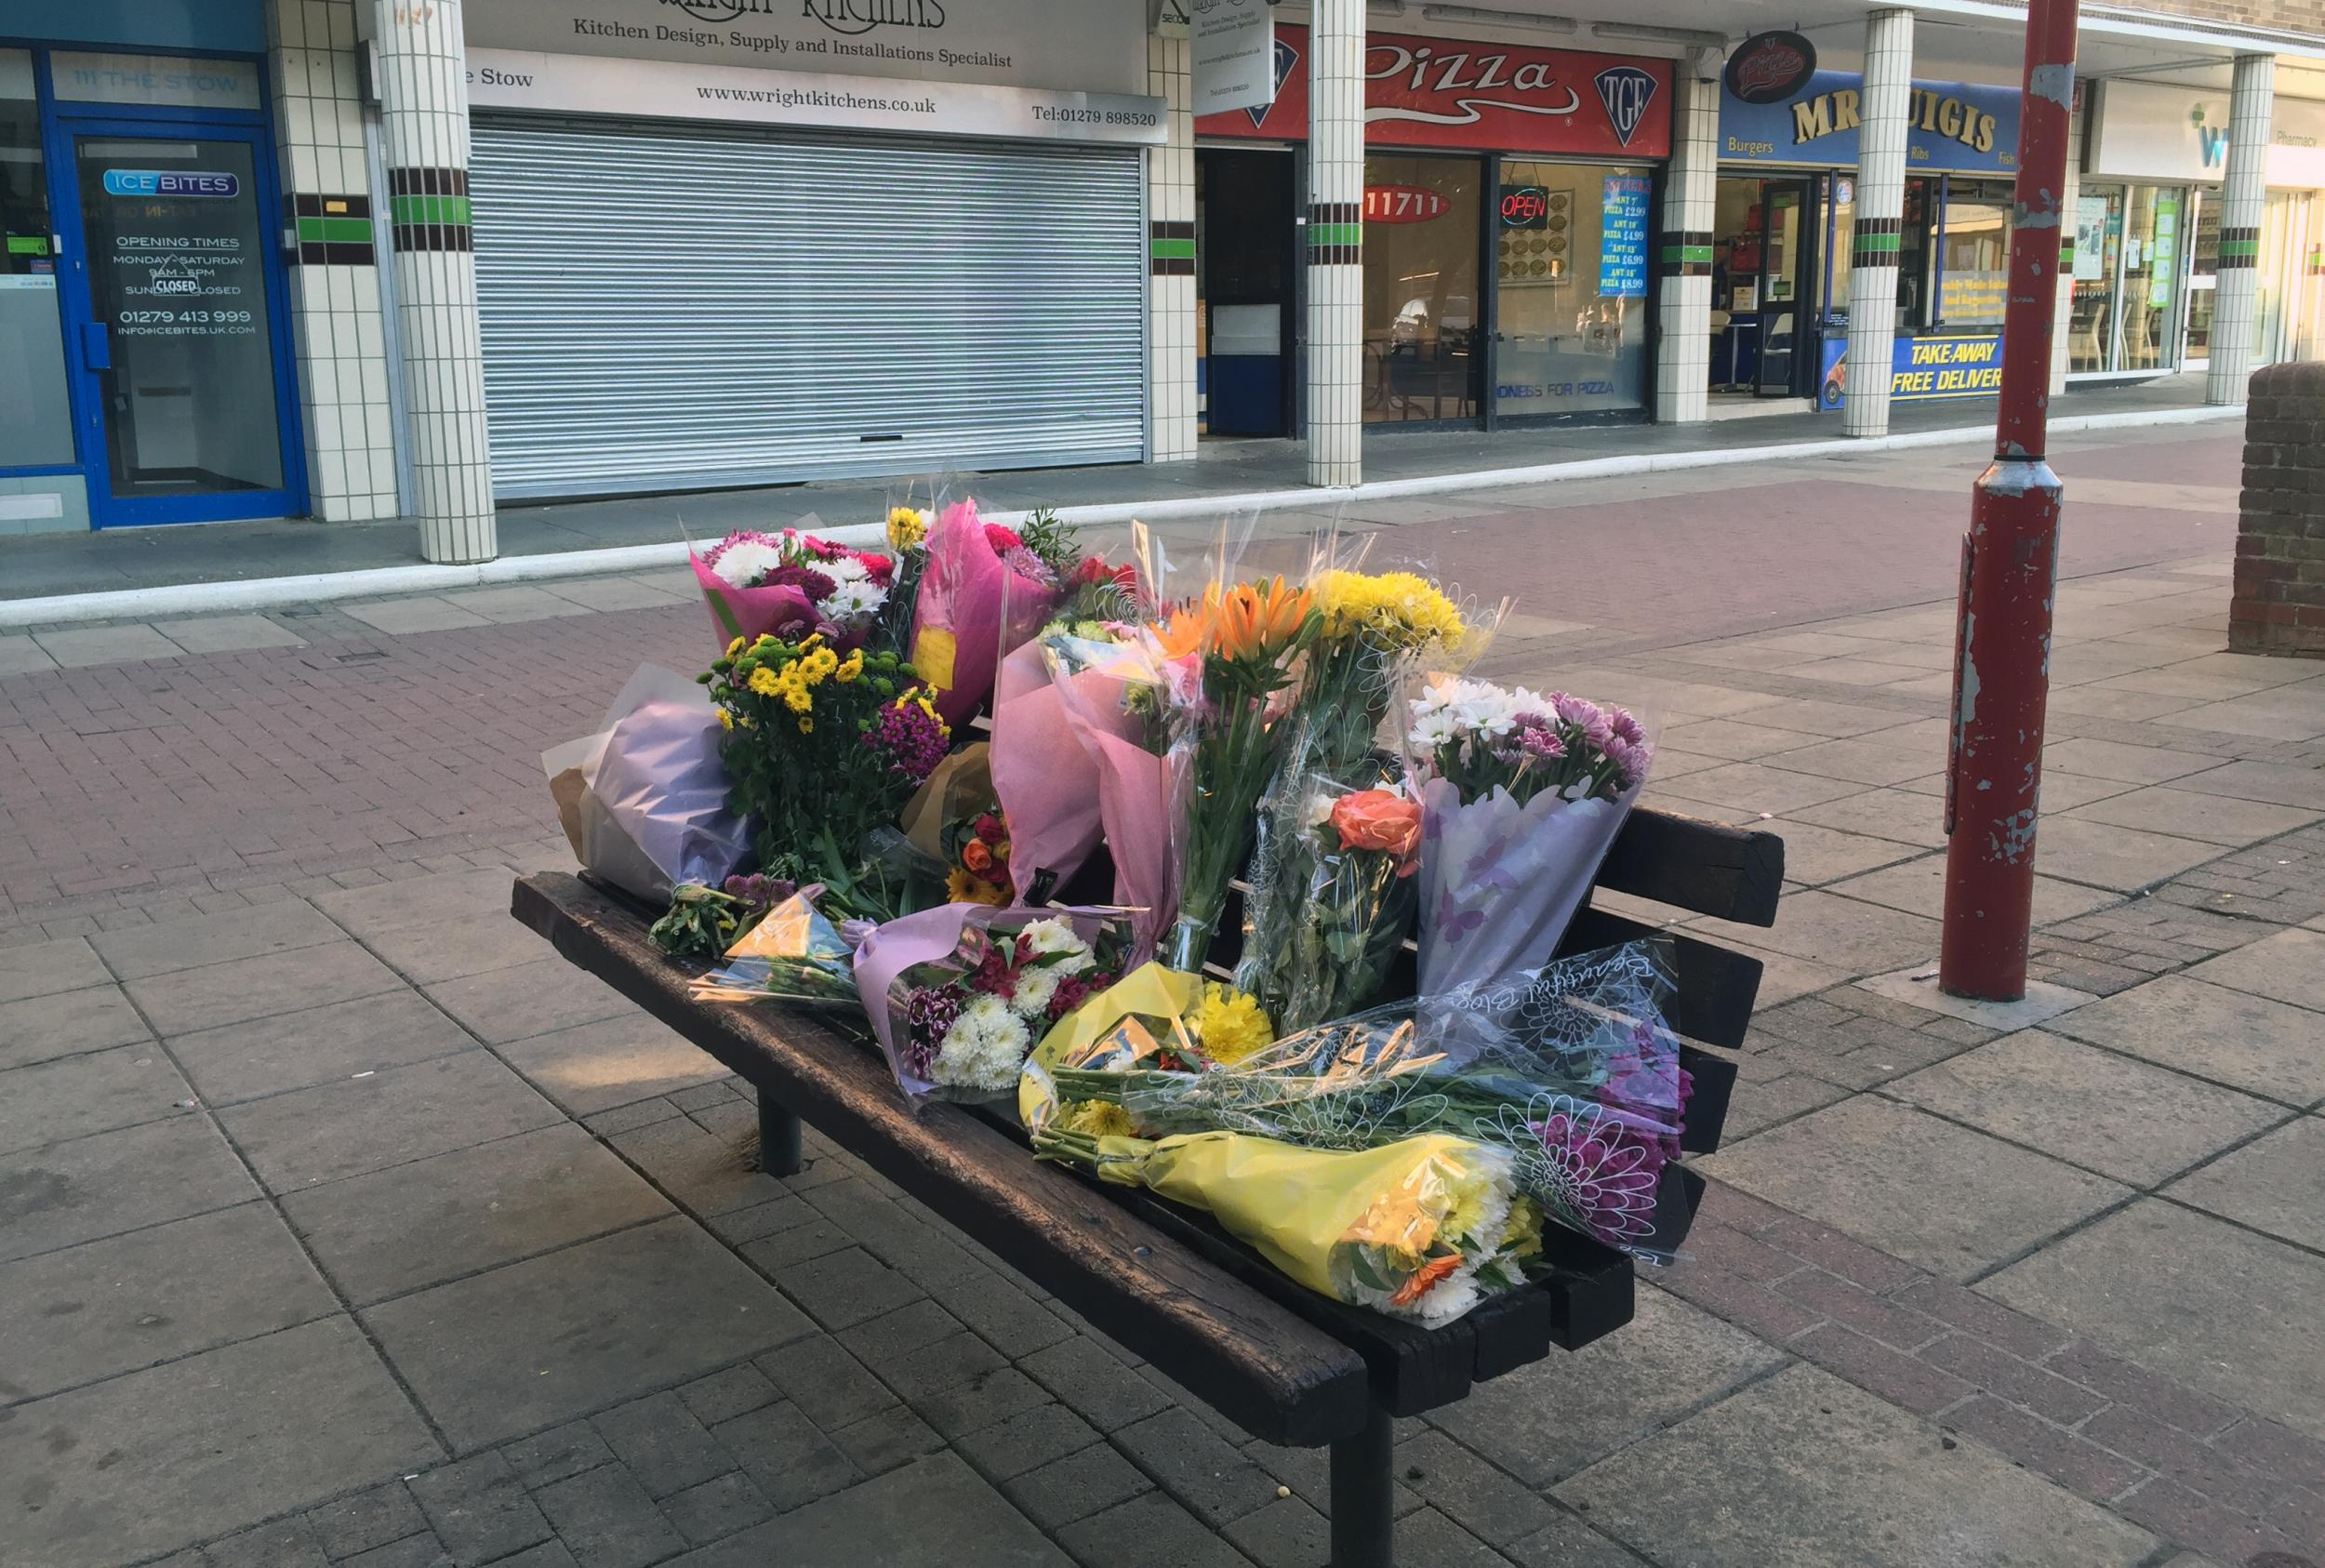 Polish men attacked in 'hate crime' hours after murdered